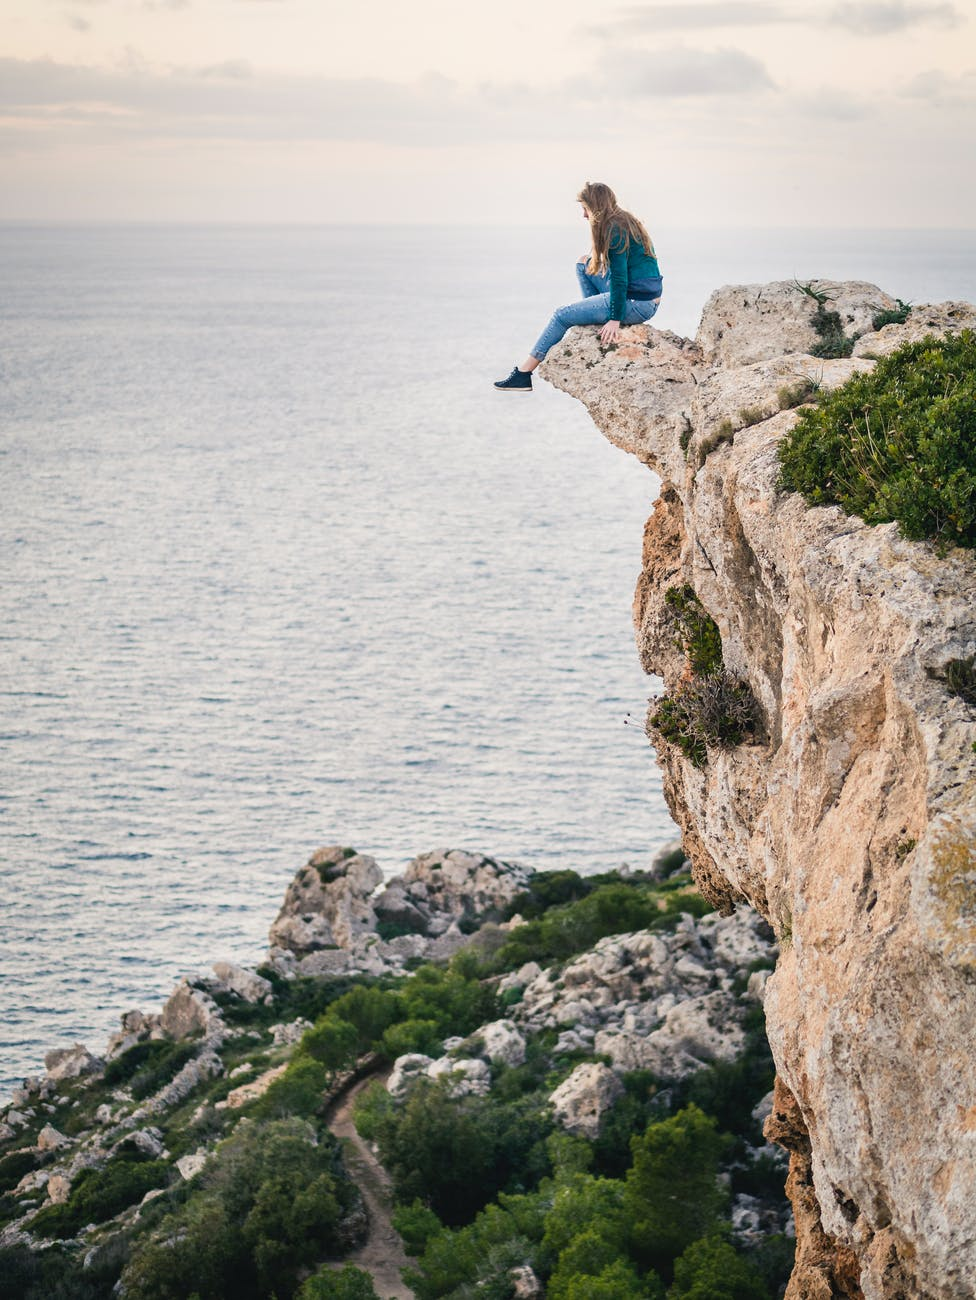 Person sitting on the edge of a cliff overlooking the ocean.